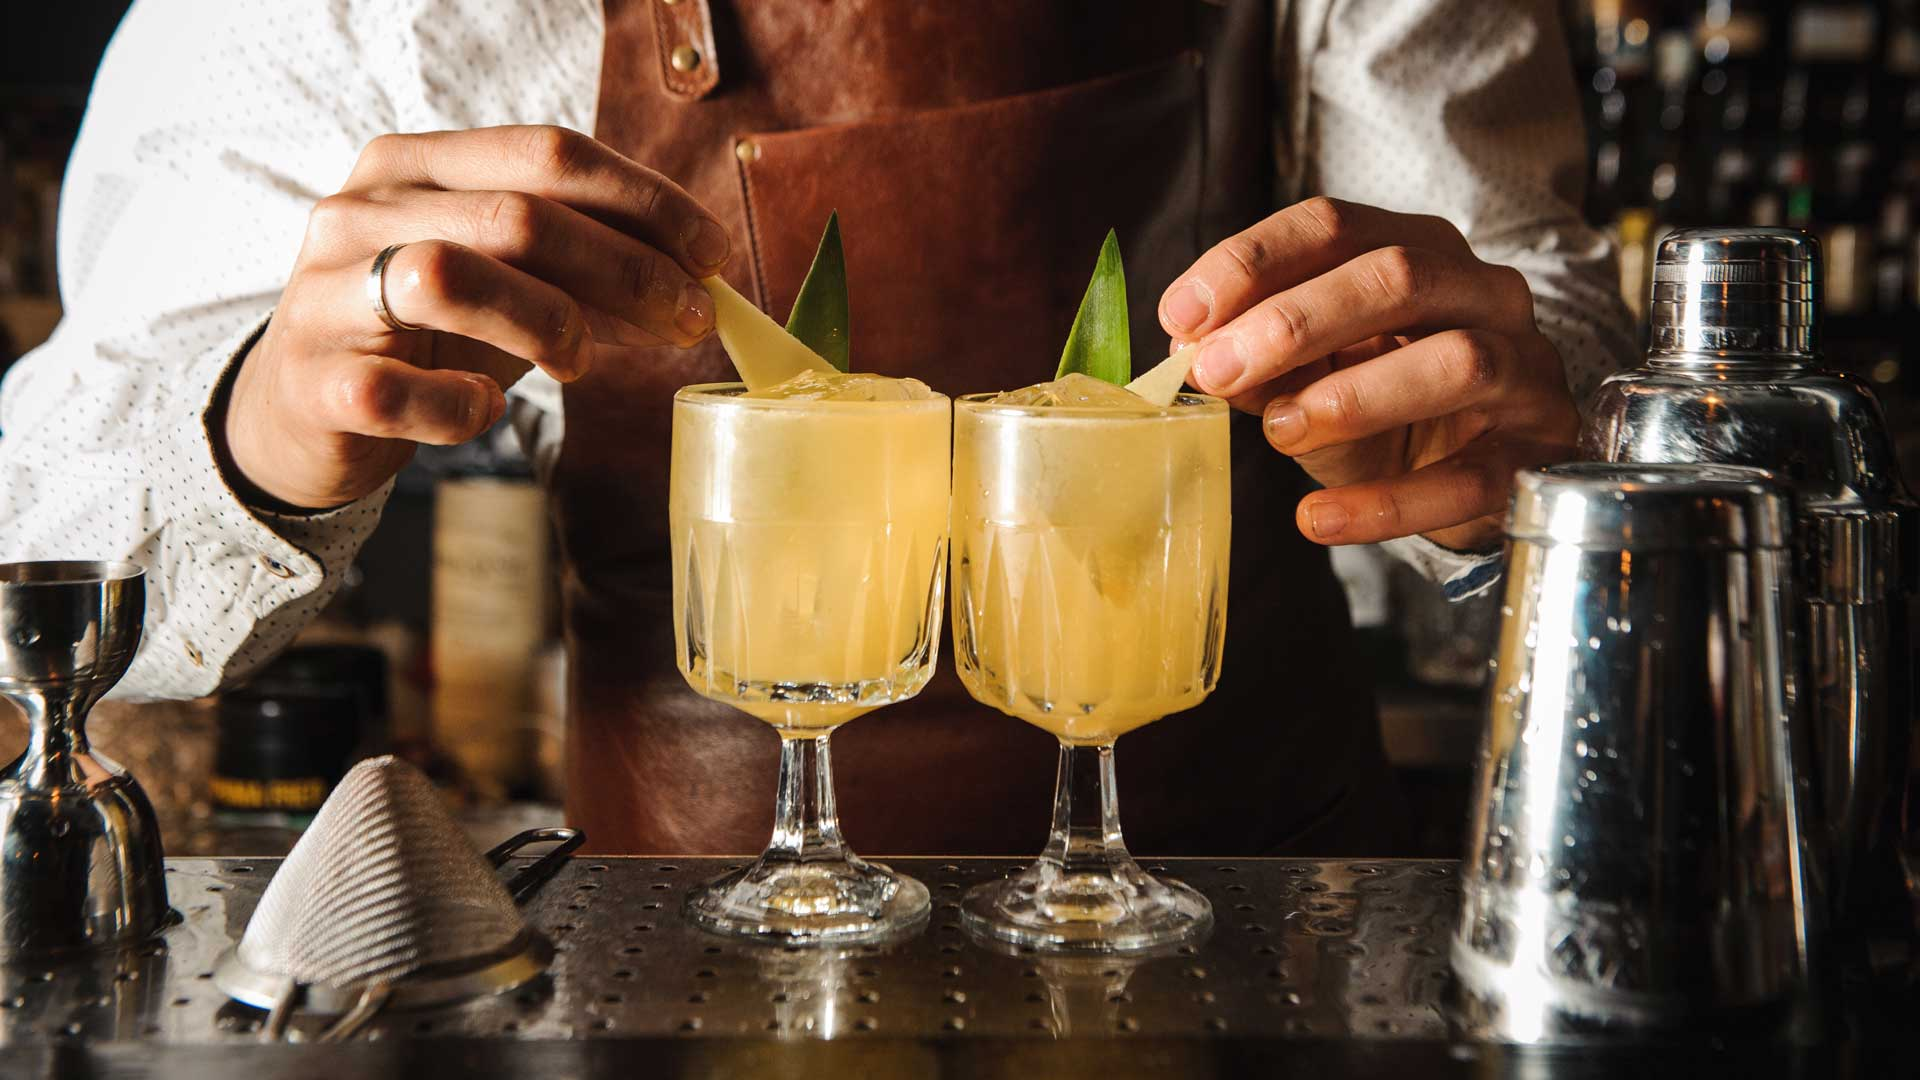 cocktail-IBA-illegal-ricetta-Coqtail-Milano